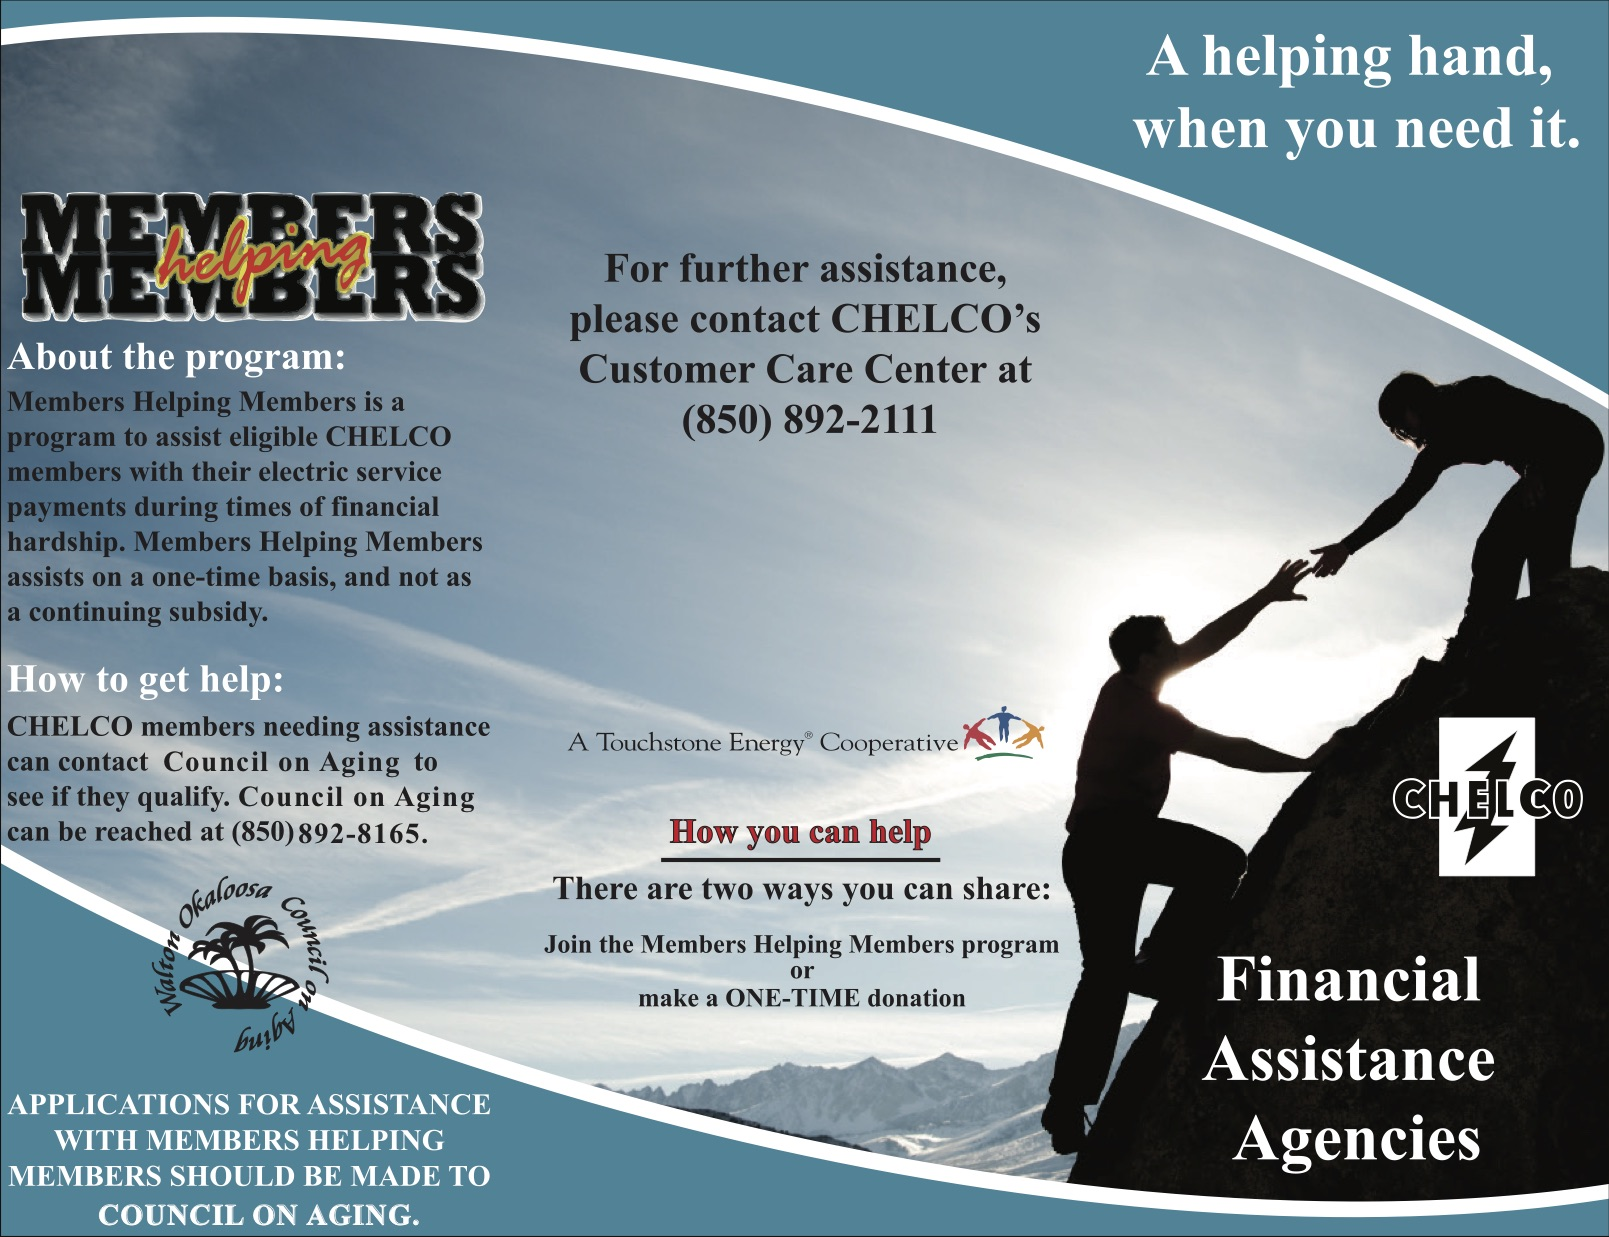 Image of brochure with local agency contact information.